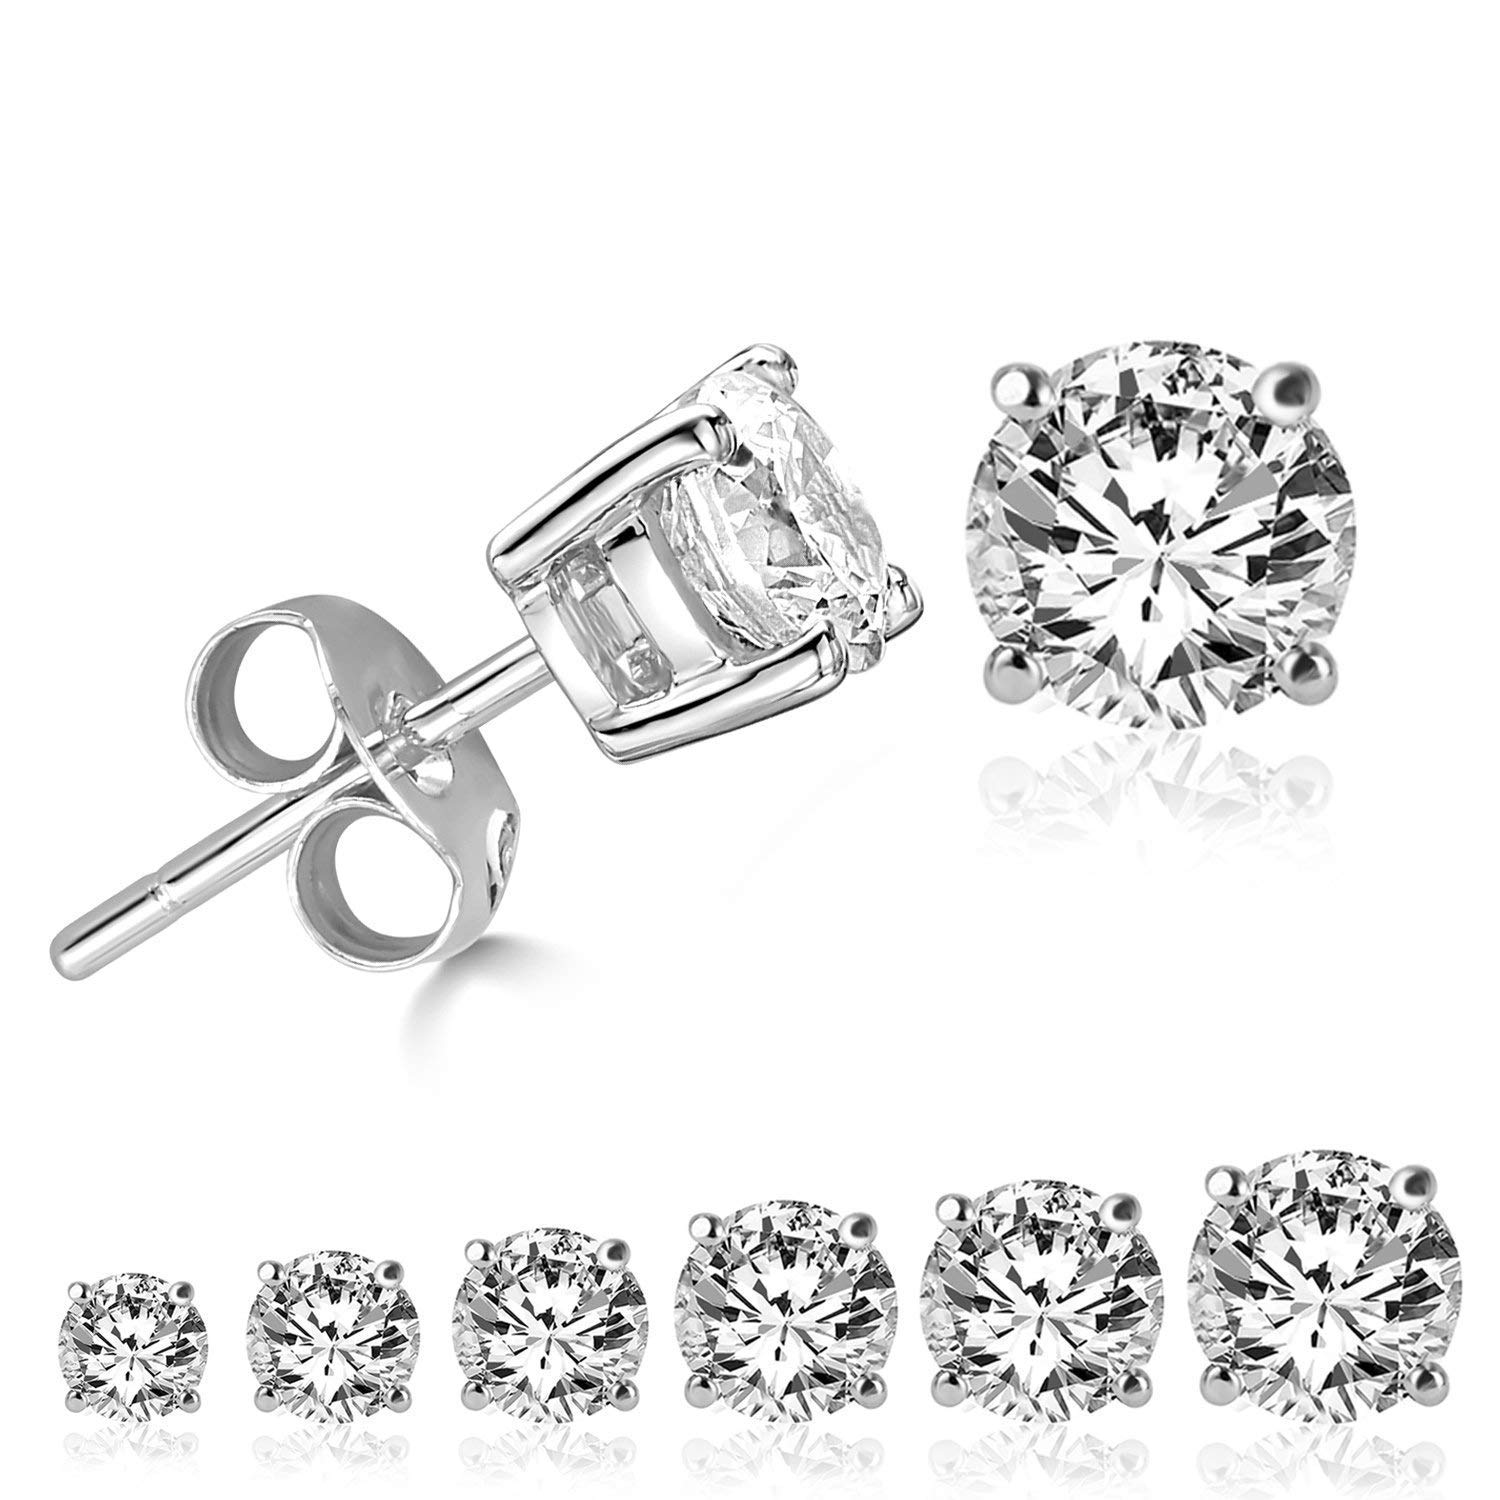 LIEBLICH Women's Round Cut Cubic Zirconia Stainless Steel Earrings Studs Plated White Gold, 3 mm - 8 mm, 6 Piece